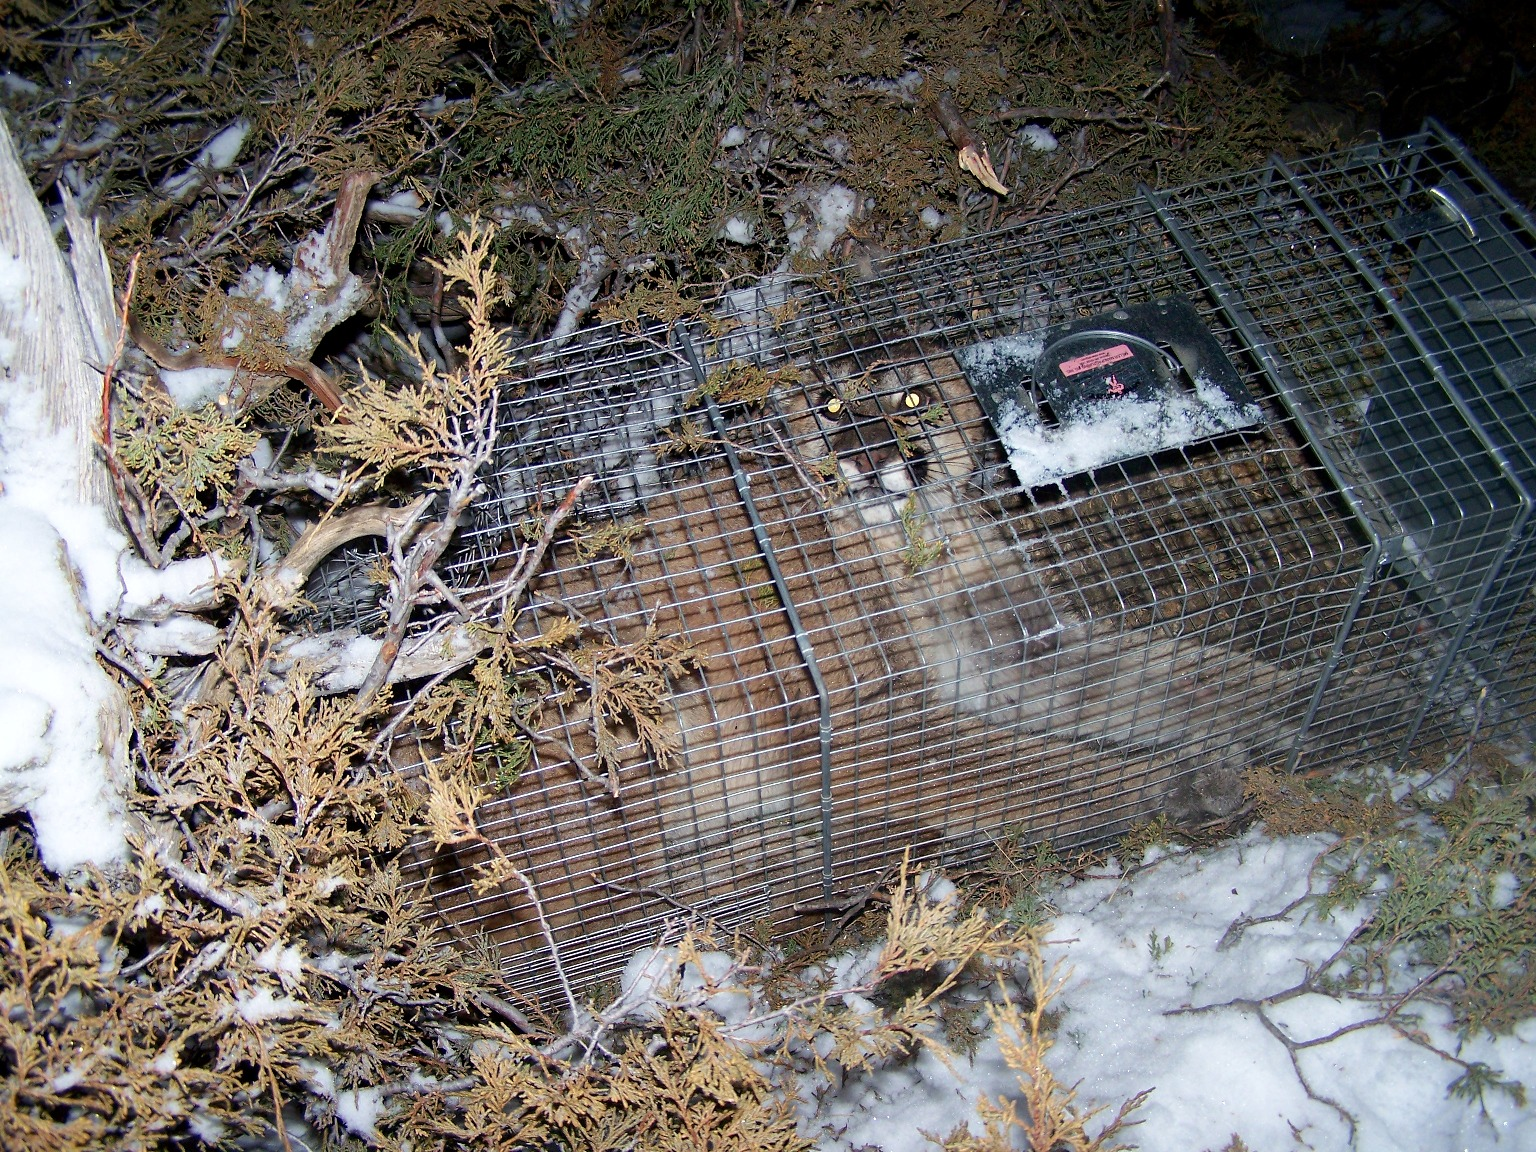 One very surprised trapper caught a 90-lb. female mountain lion in his Little Giant LT5 trap.